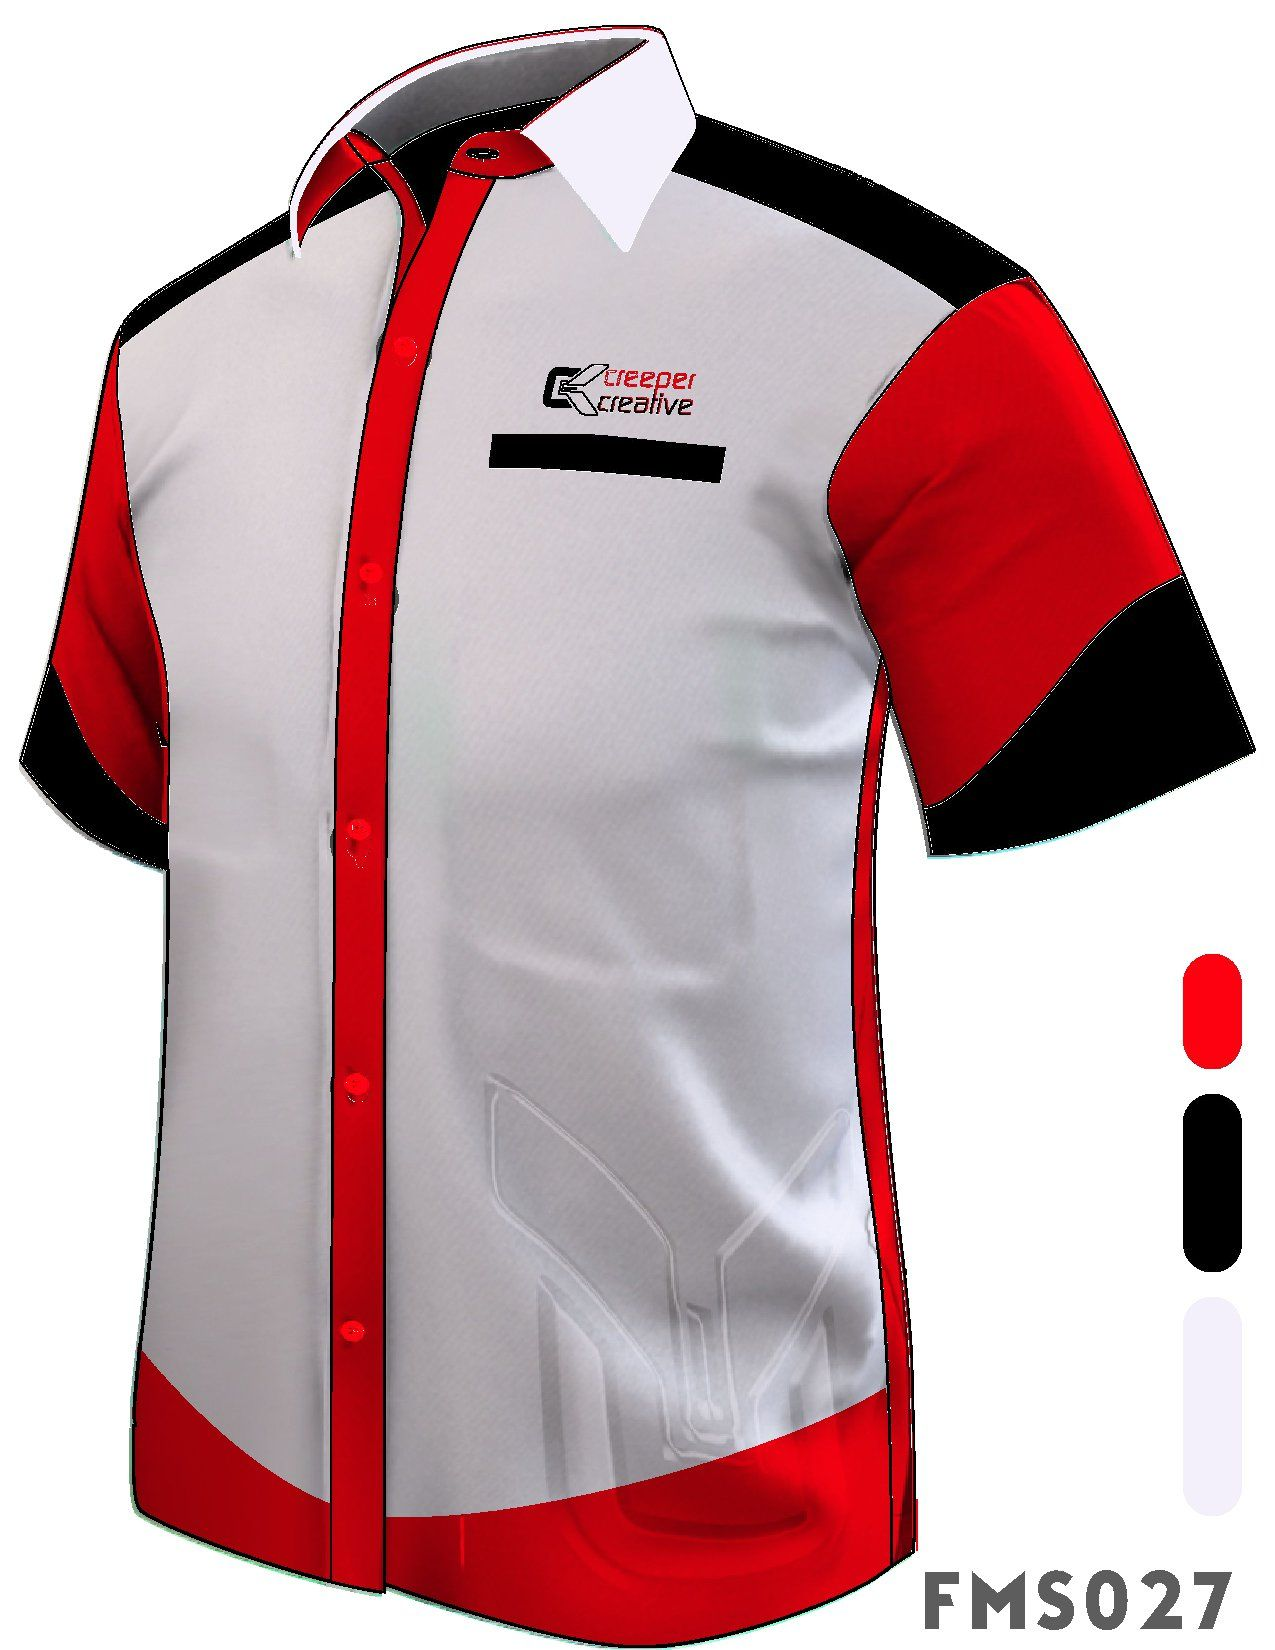 Embroidered Corporate Apparel & Company Uniforms. Design